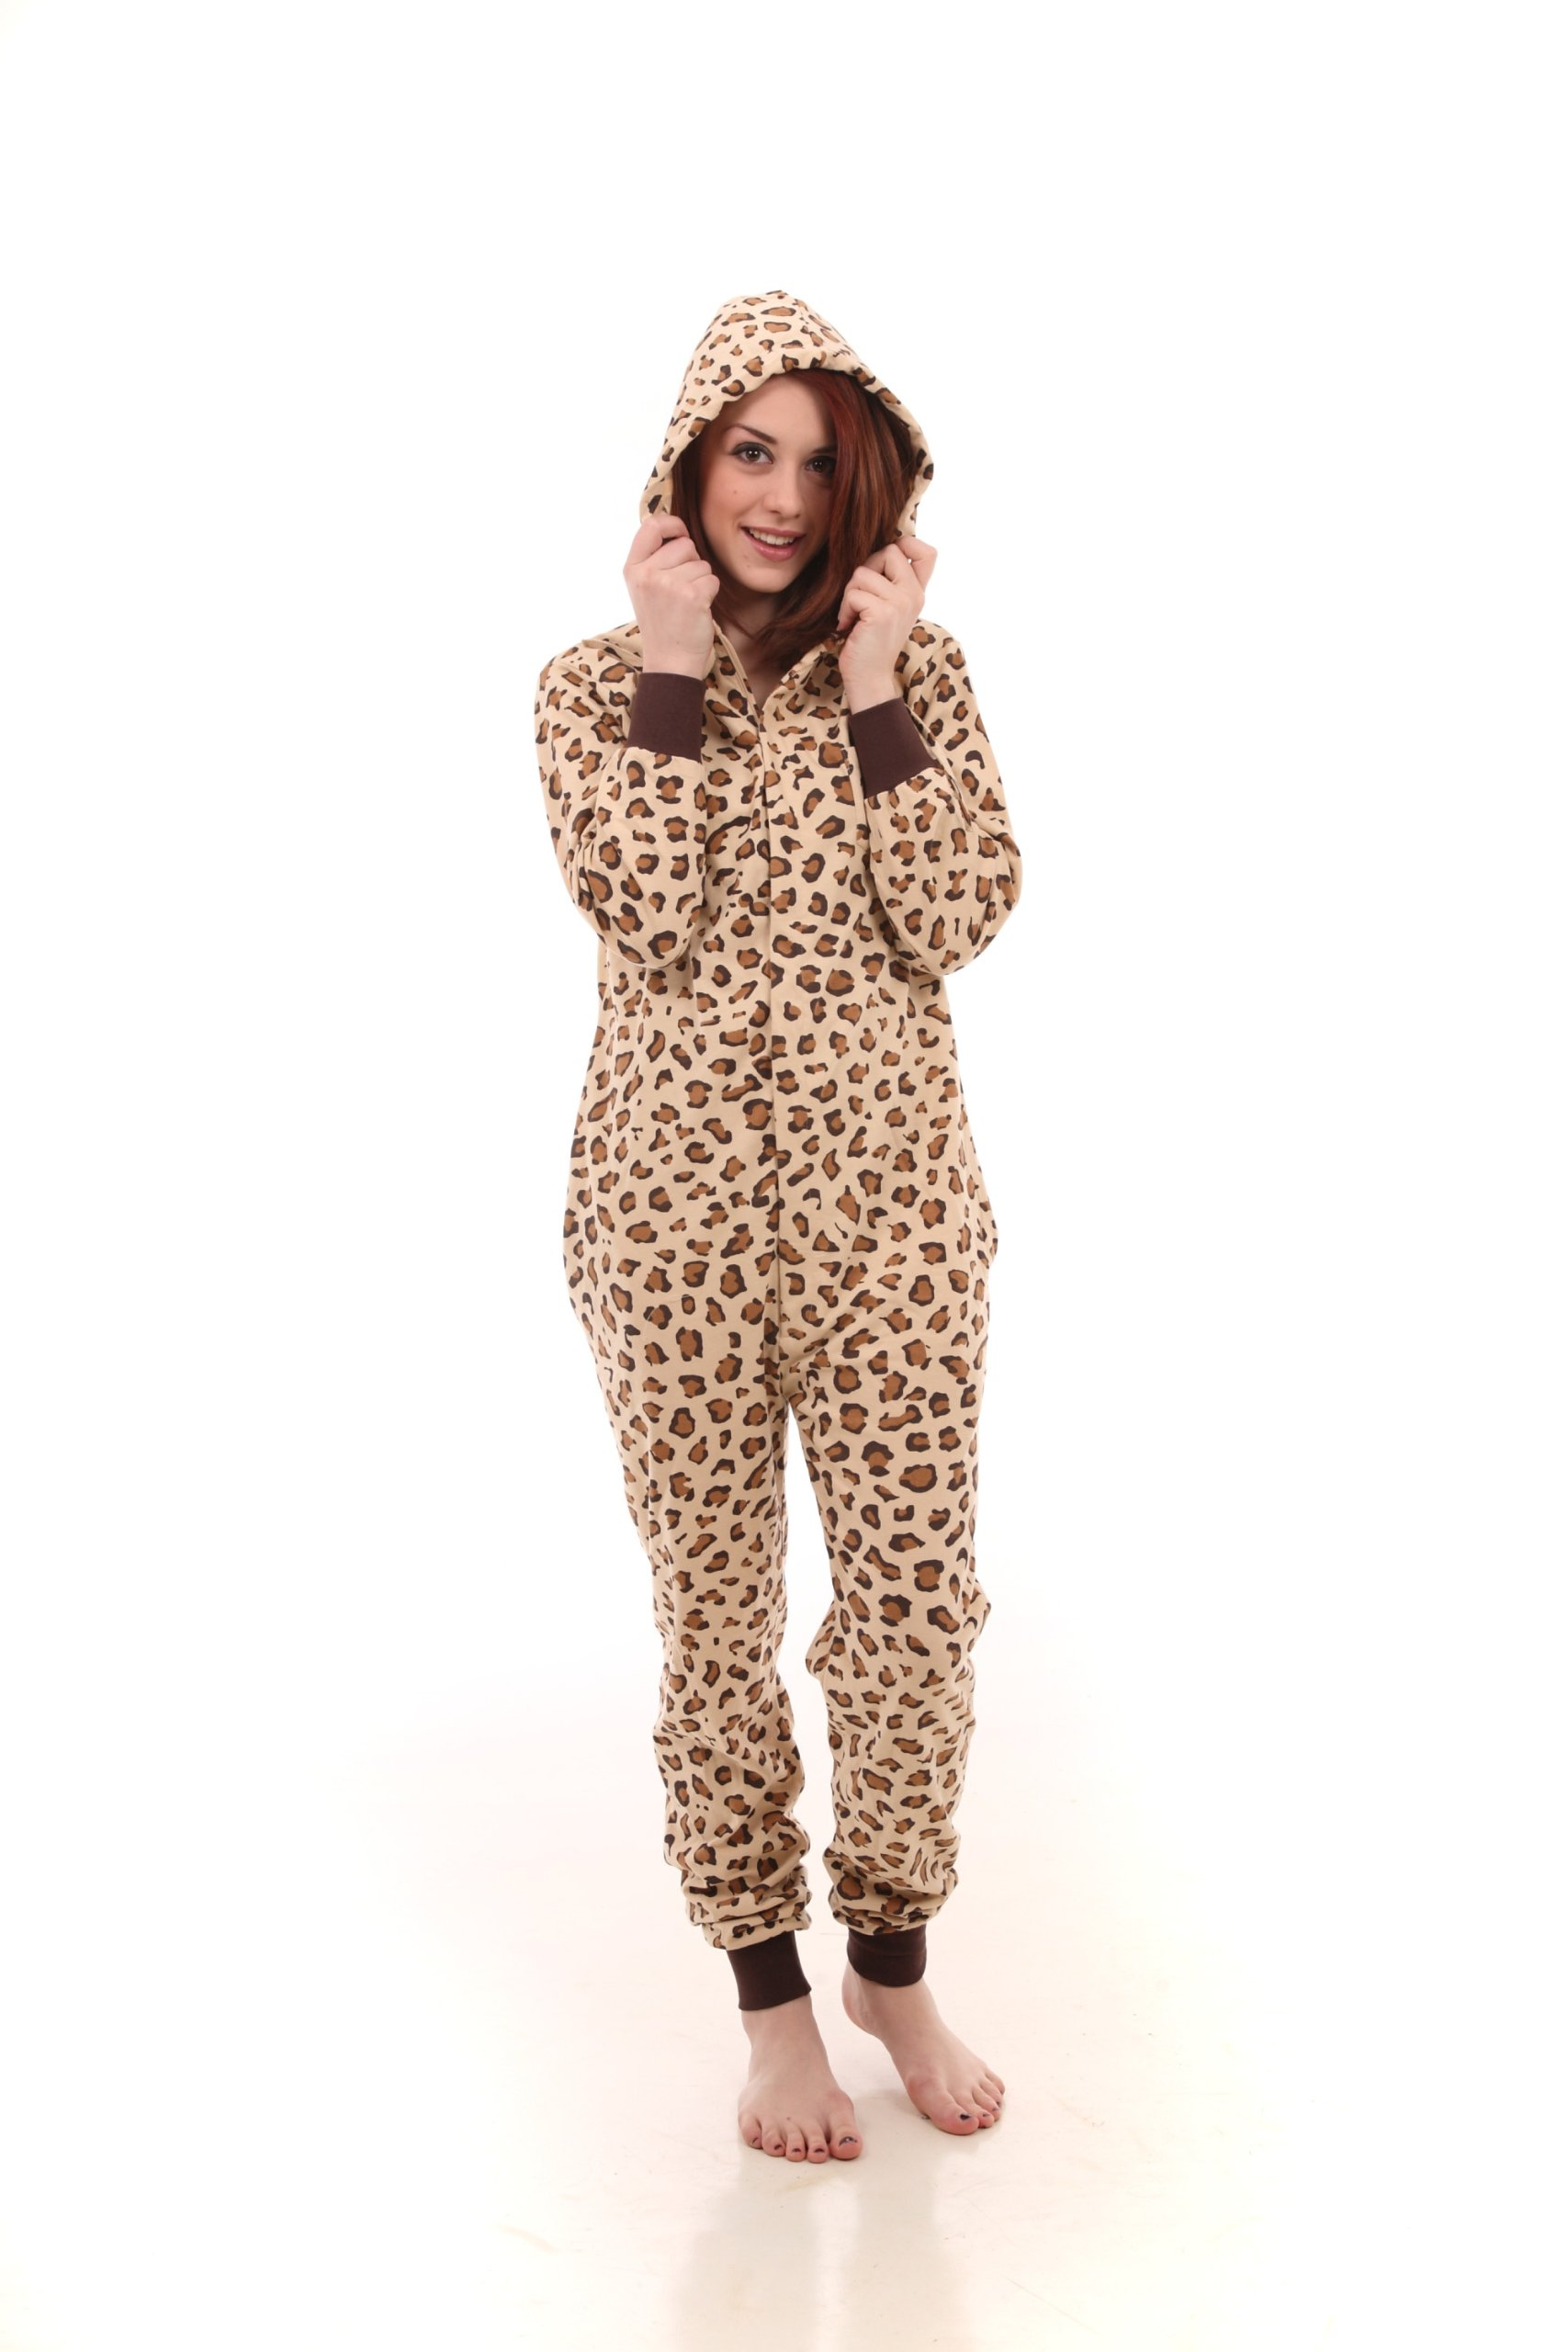 Leopard Spot Non Footed One Piece Pajama Jumpsuit, XS-XL